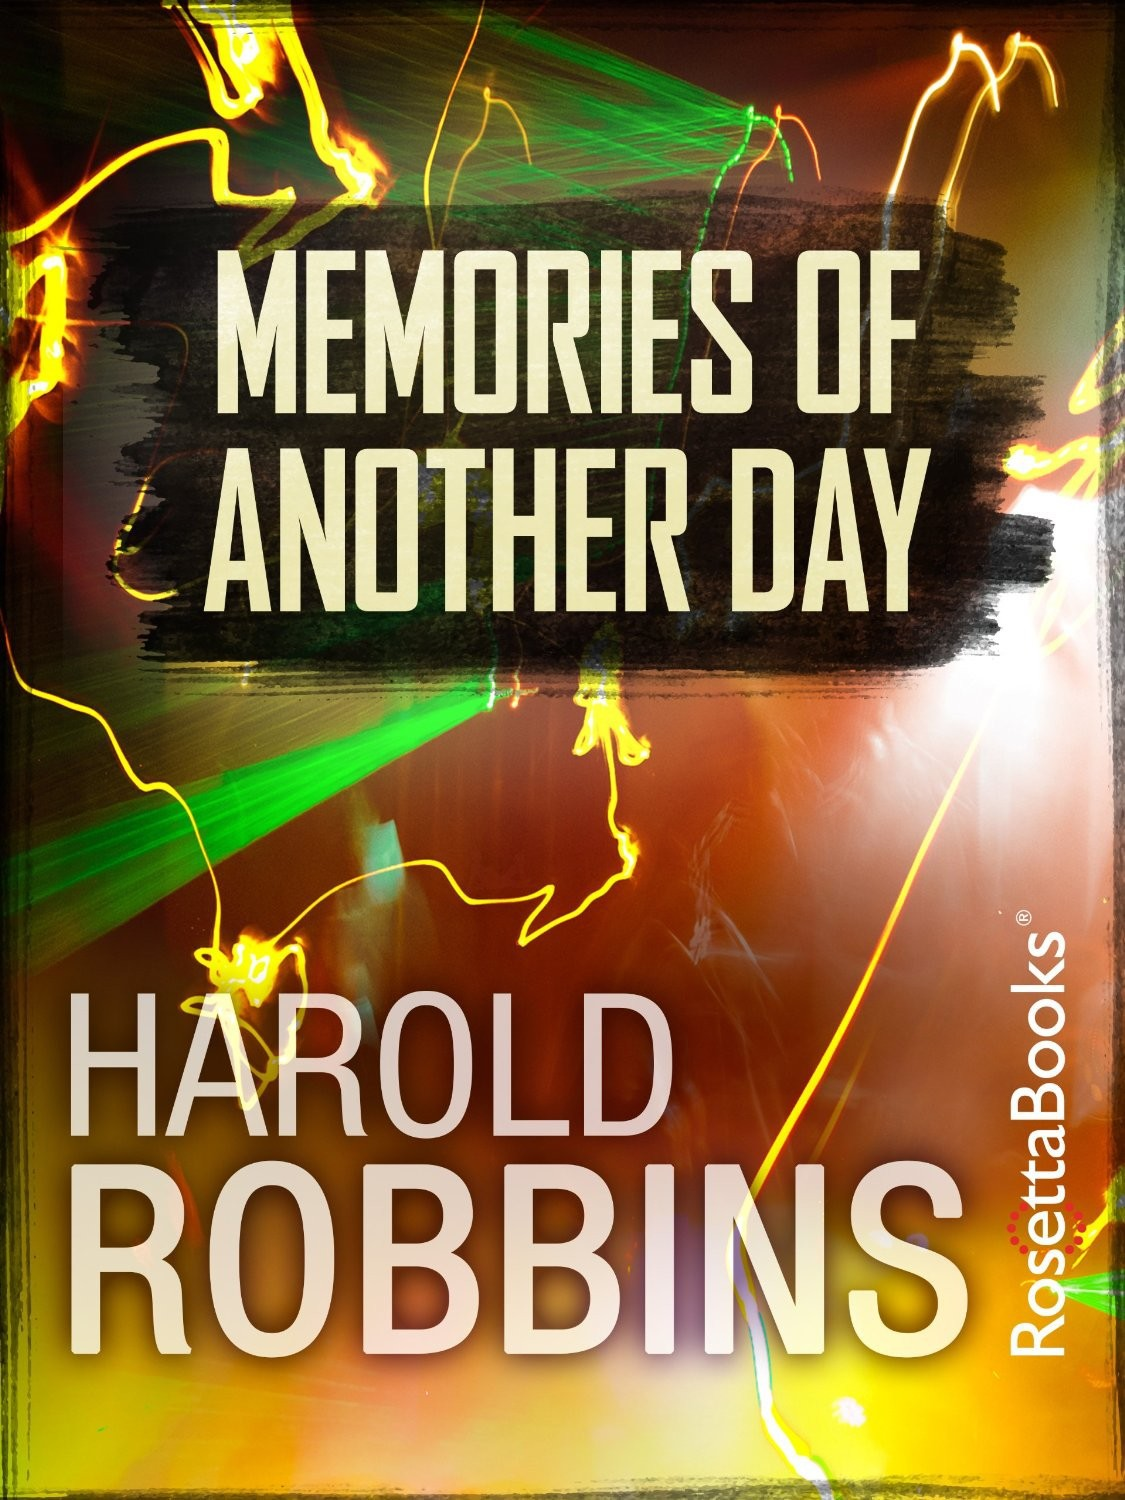 Another Day By Harold Robbins